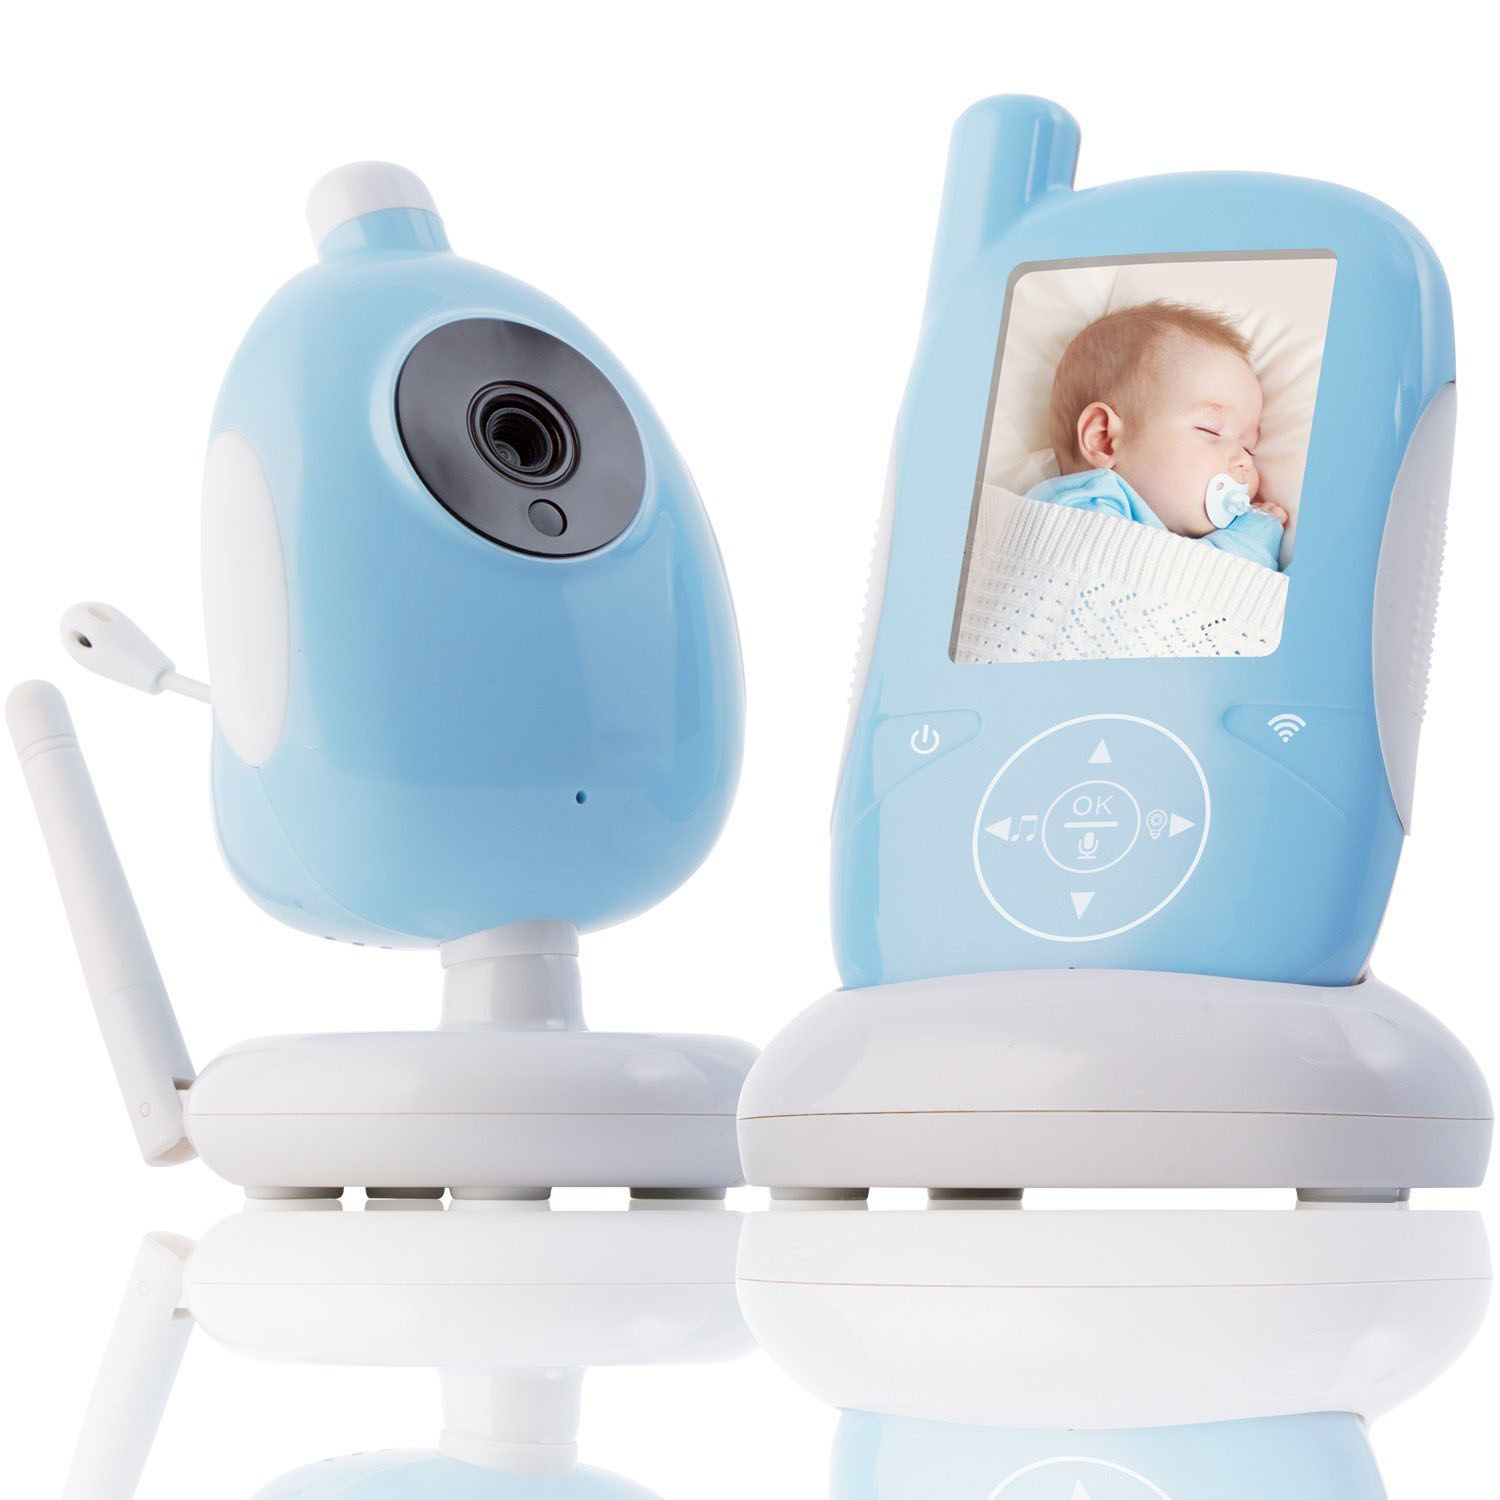 "Wireless Video Baby Kids Monitor Security Camera 2""/2.4"" LCD Screen 2 Way Talk Night Vision 2.4G IR LED Temperature Hassle-Free"